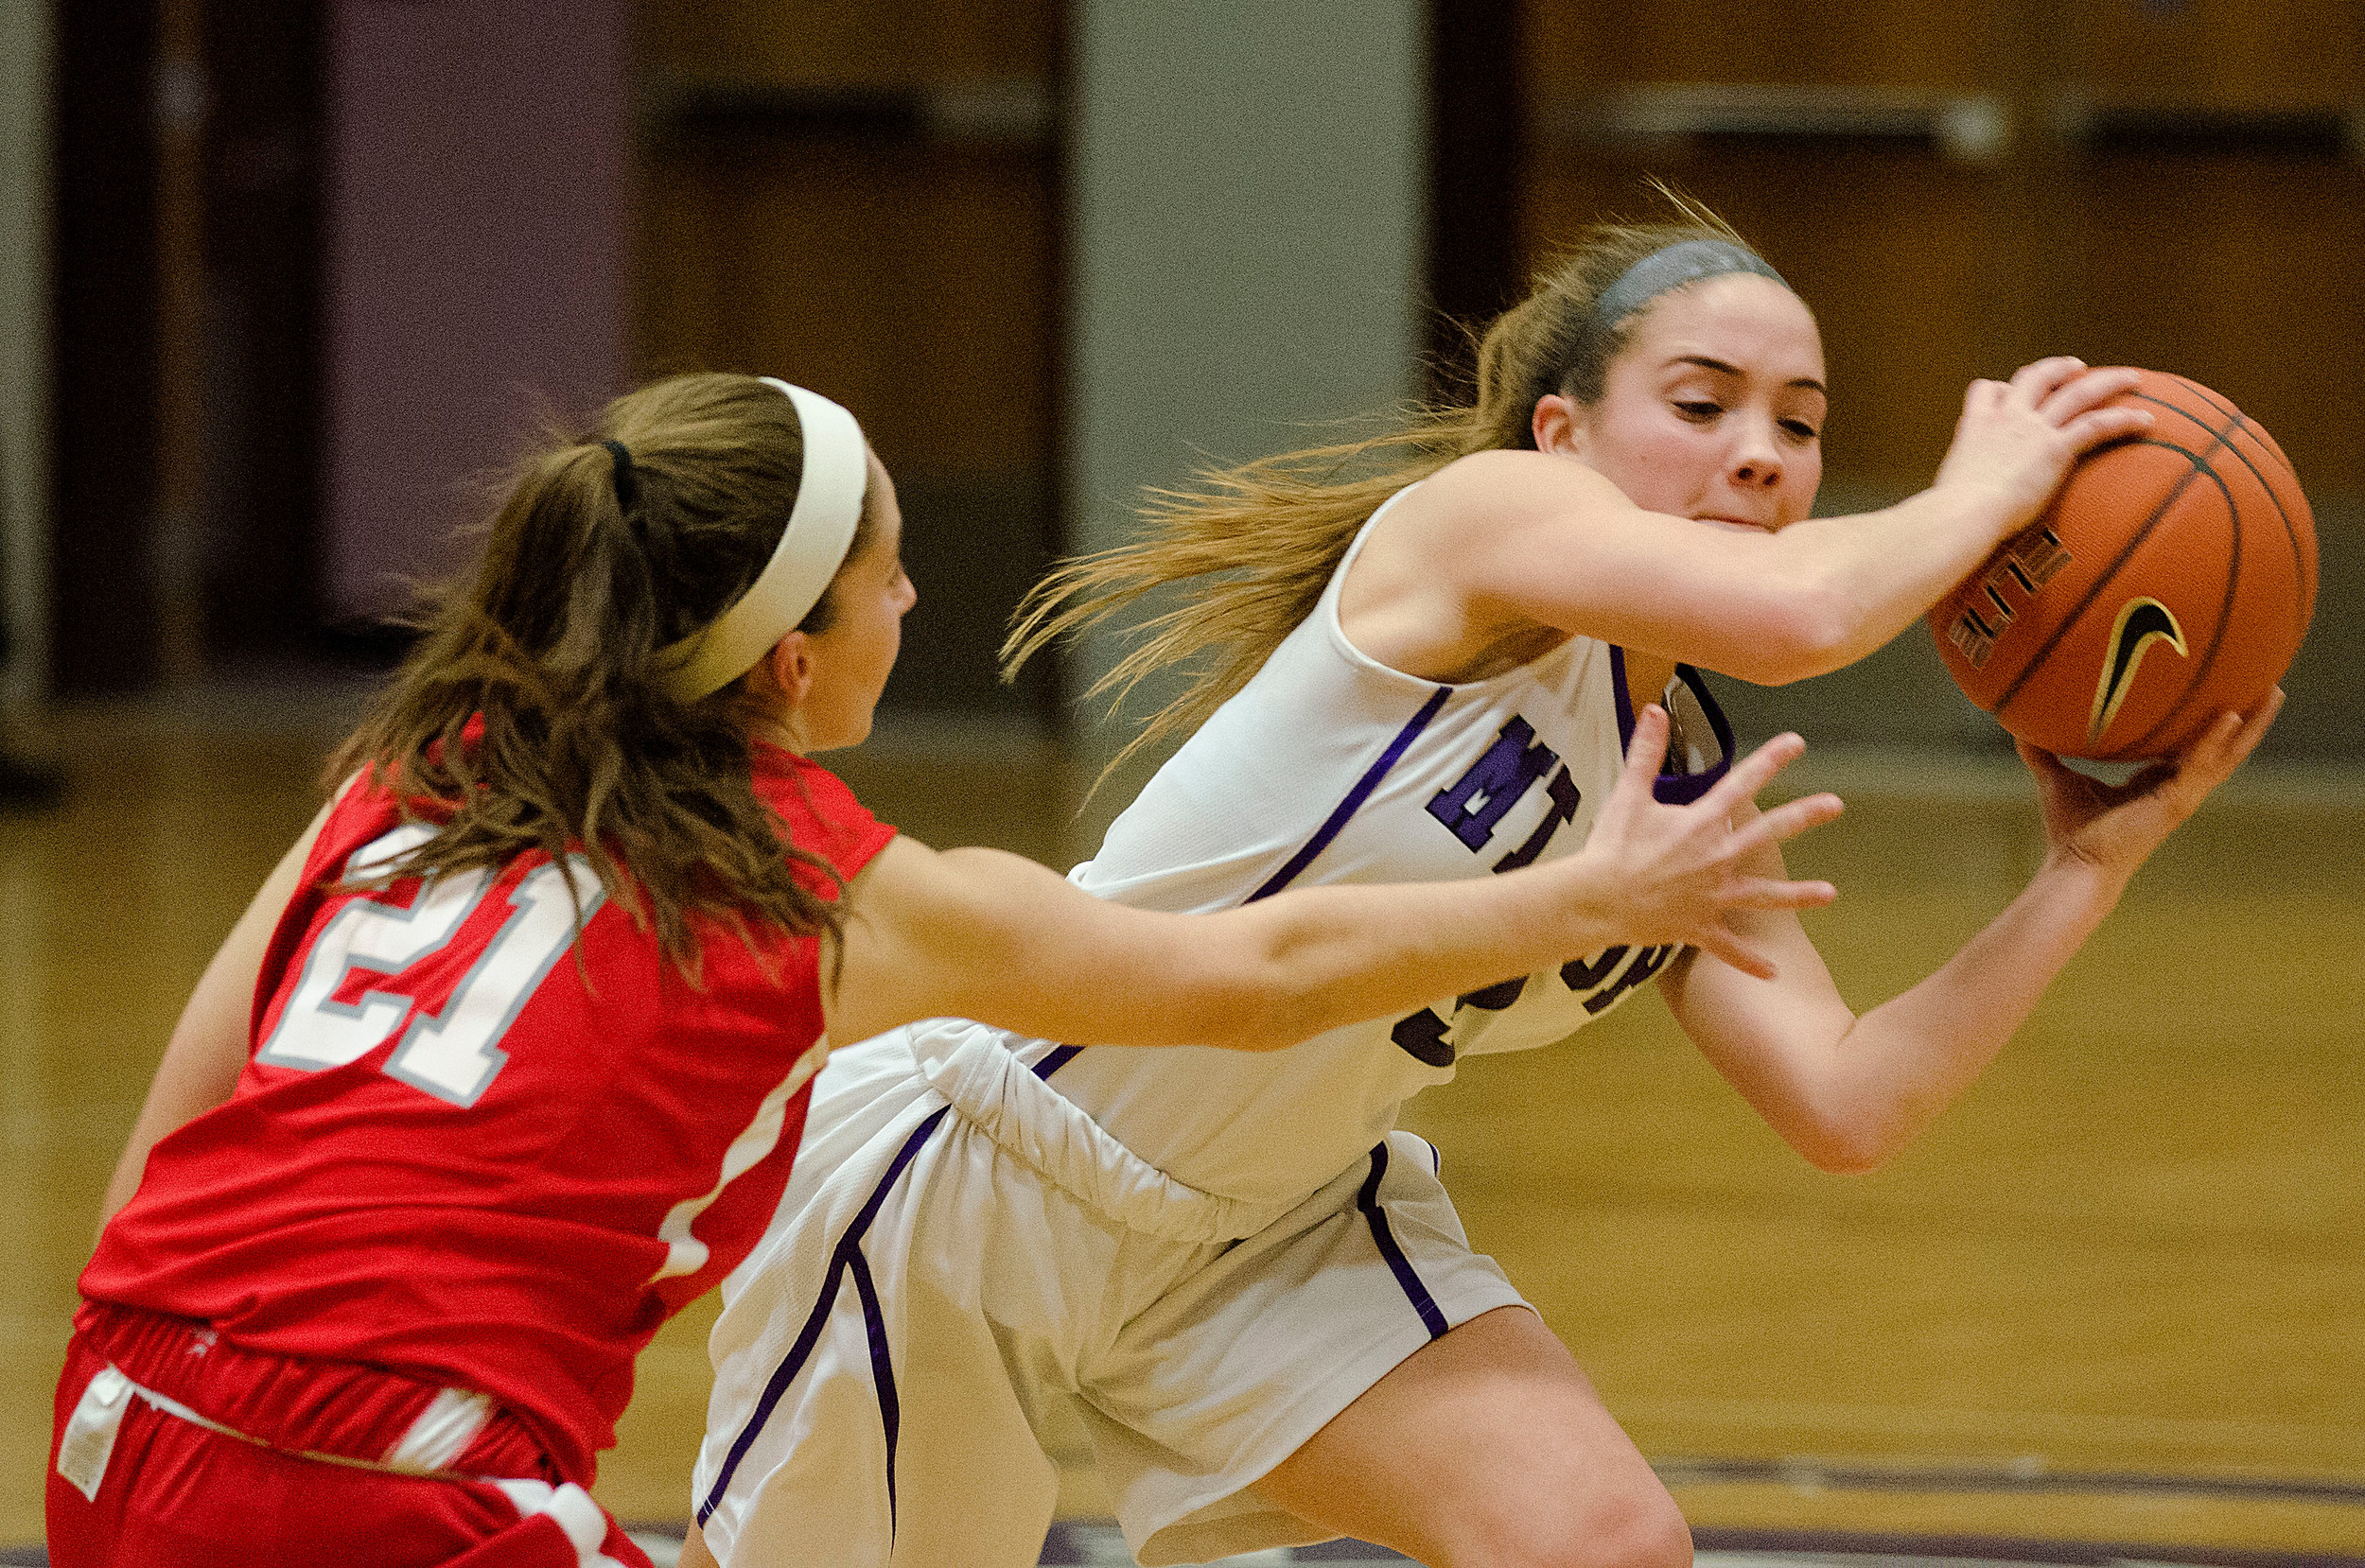 east providence girls In girls basketball, east providence took on undefeated barrington, and coach mike solitro was mic'd up hear how he motivates his players in search of an up.